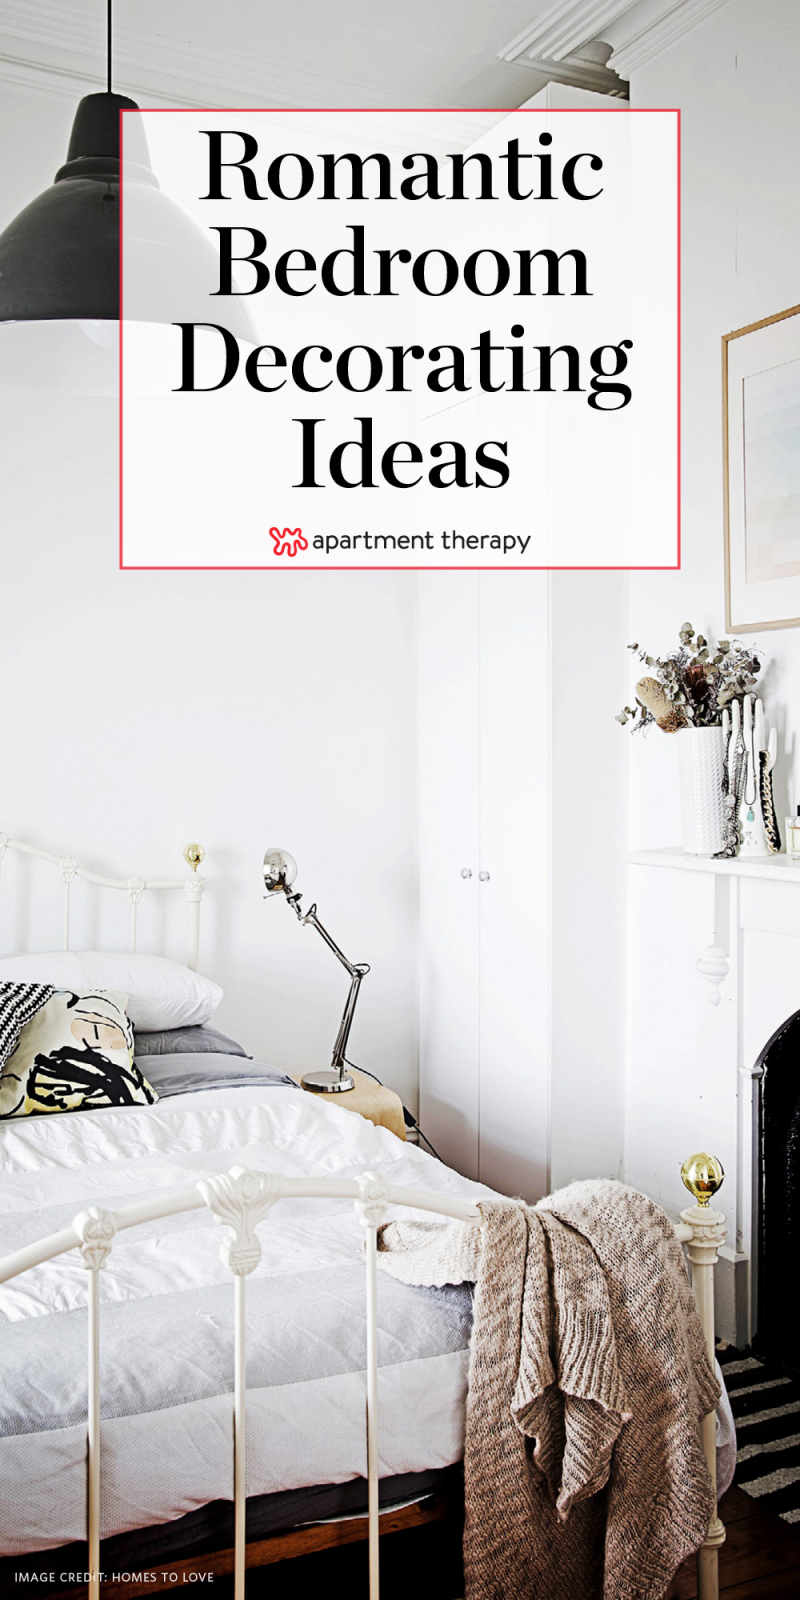 Romantic Bedroom Decorating Ideas | Apartment Therapy within Decorative Ideas For Bedroom